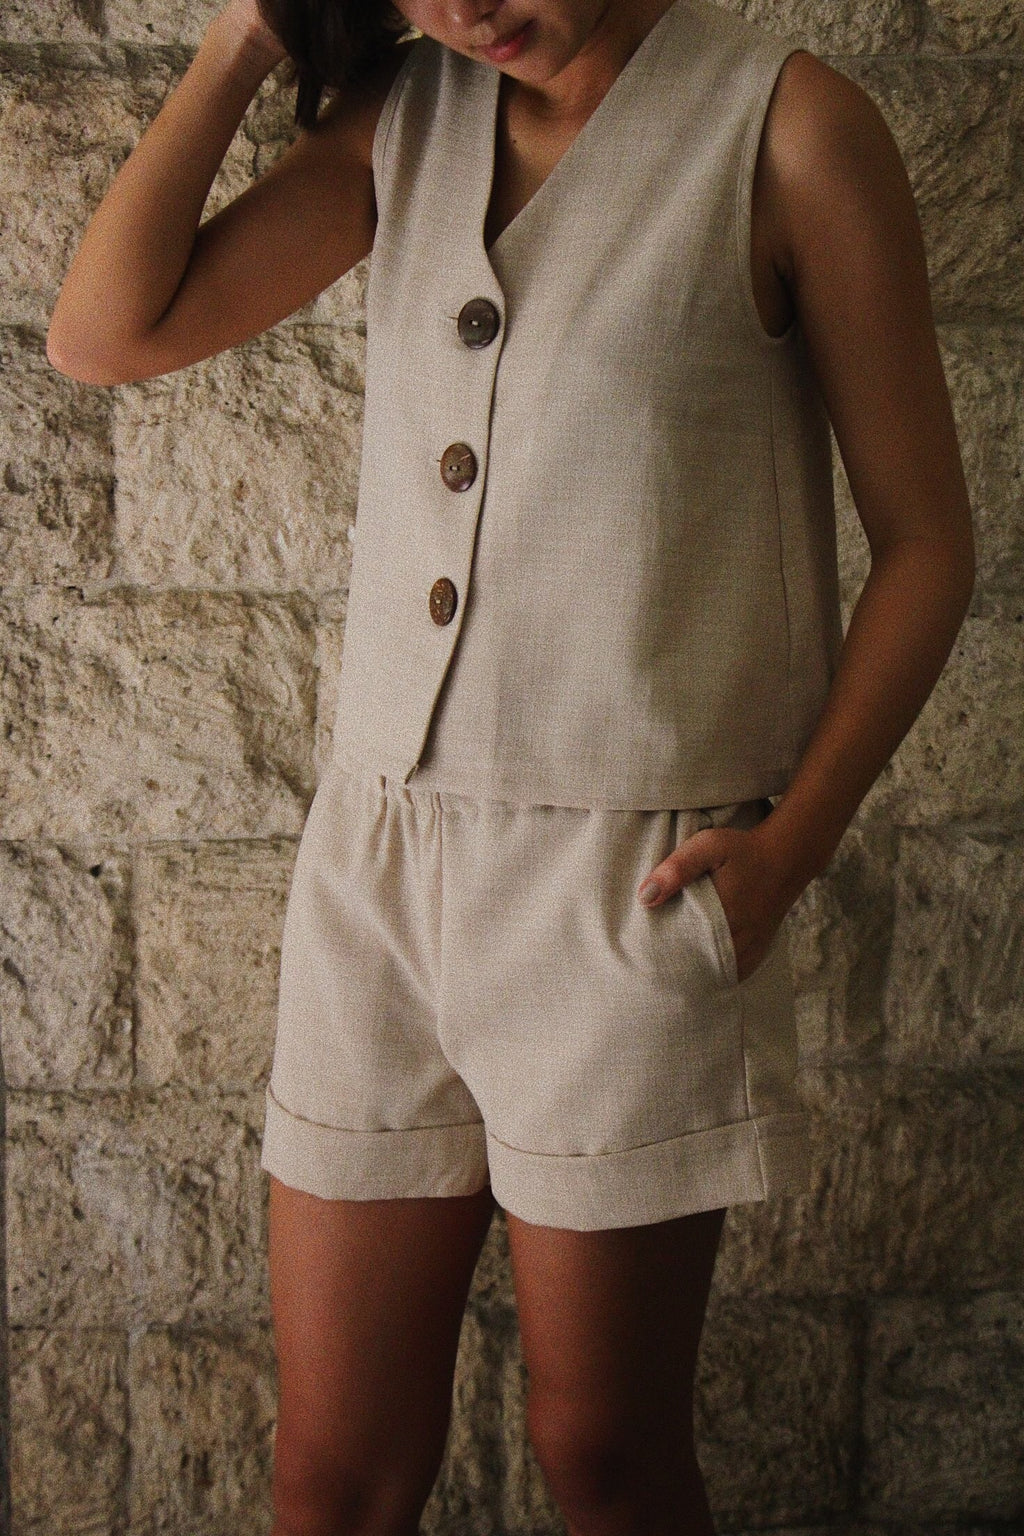 Juntos Sleeveless Top in Oat